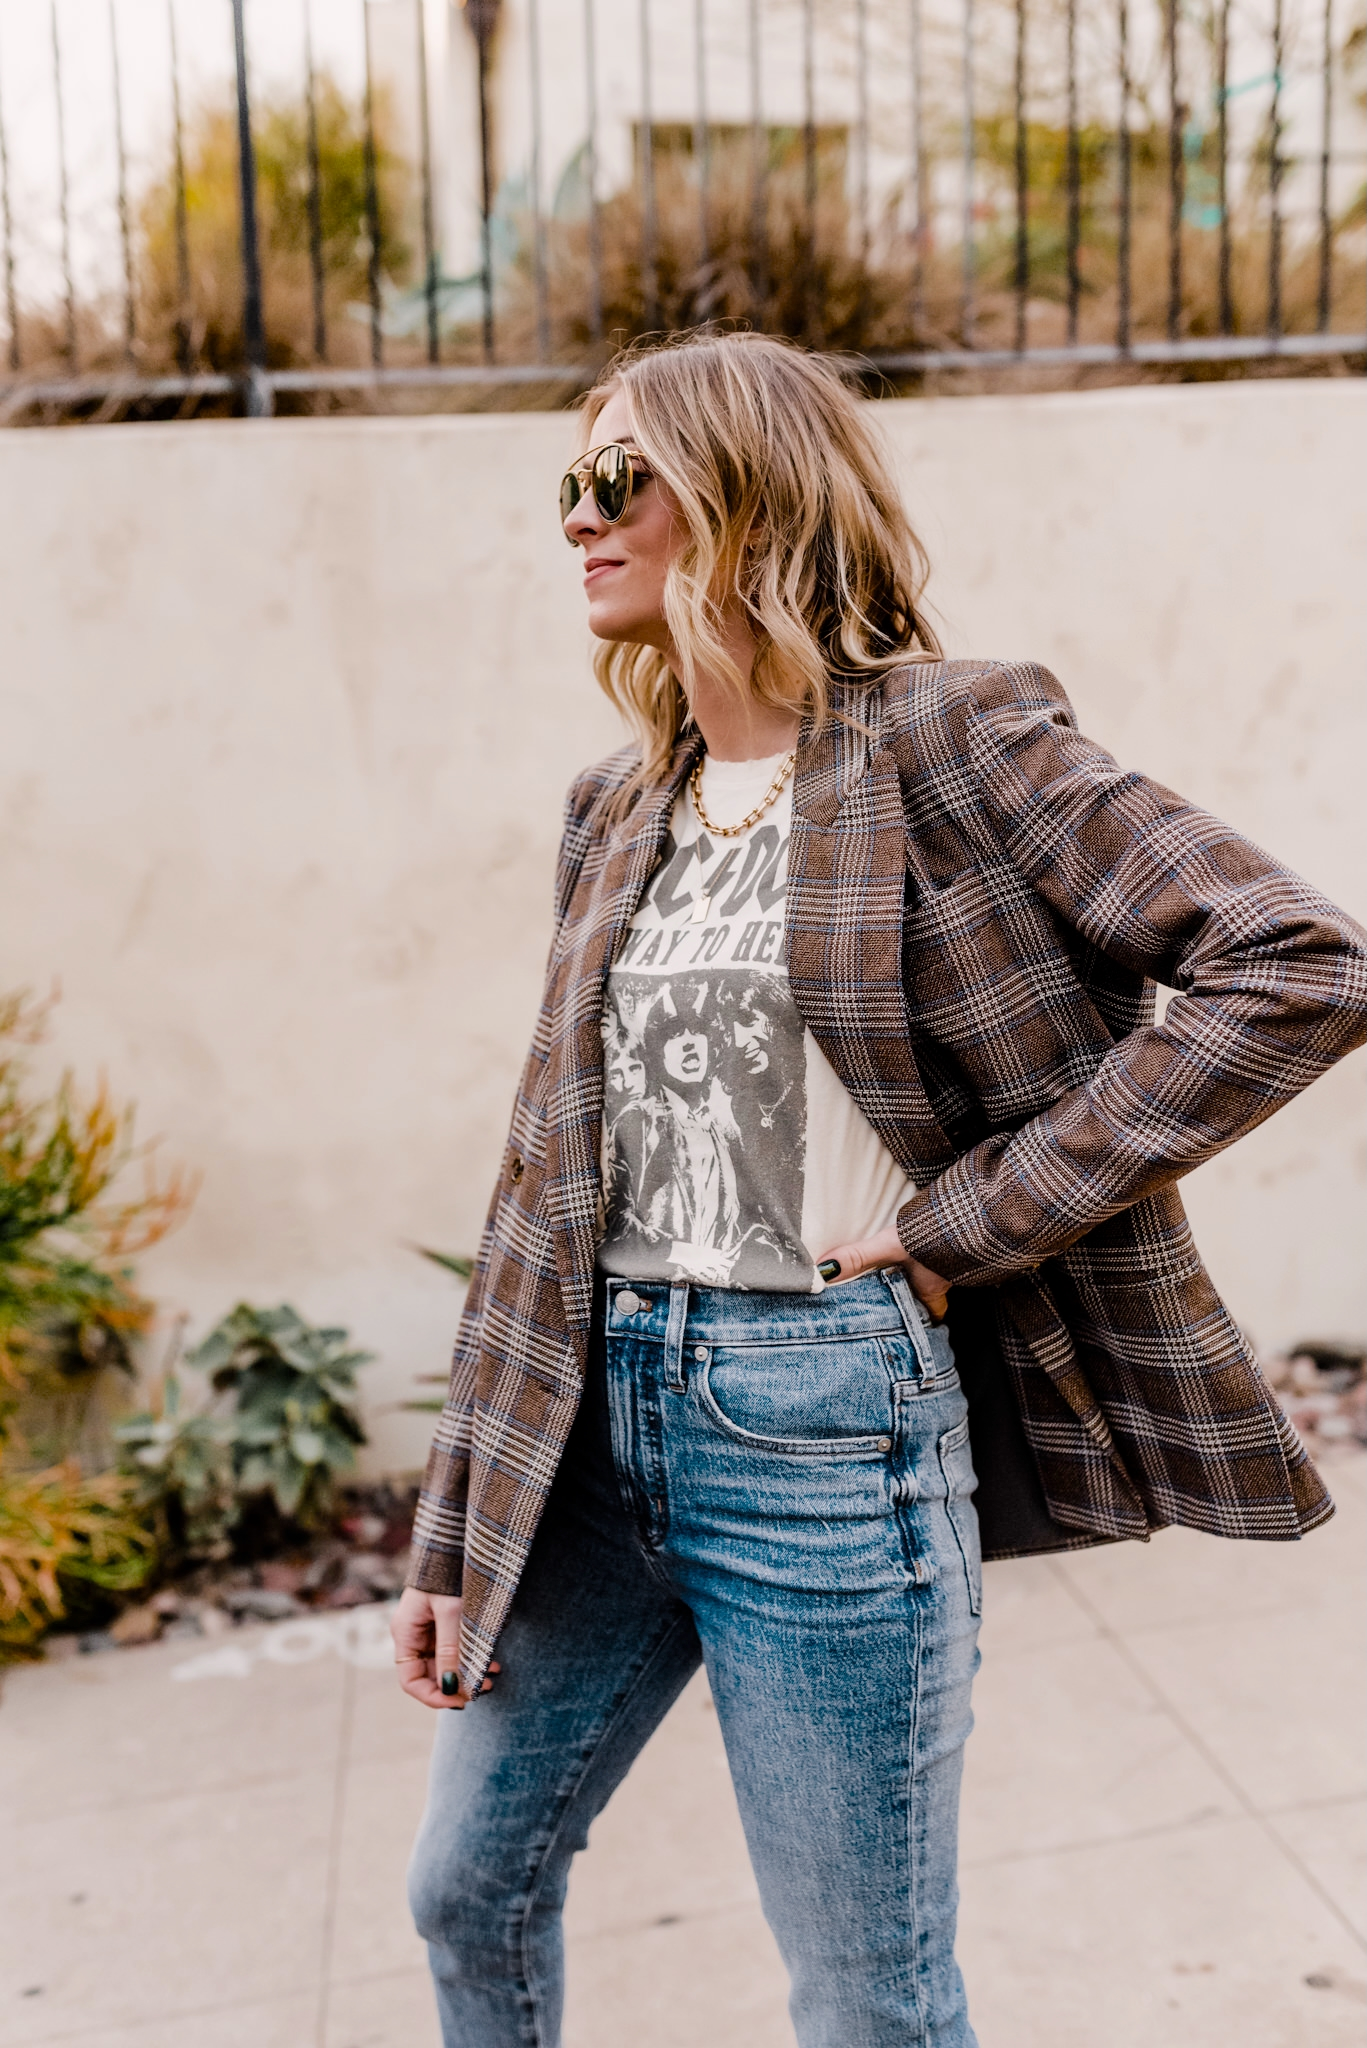 top lug sole boots | top lug sole boots | Lug Sole Boots by popular San Diego fashion blog, Navy Grace: image of Camilla Thurman wearing a AC/DC Graphic Tee, Similar Blazer Jacket, Marc Fisher Lug Sole Boots, Denim, and Sunglasses.